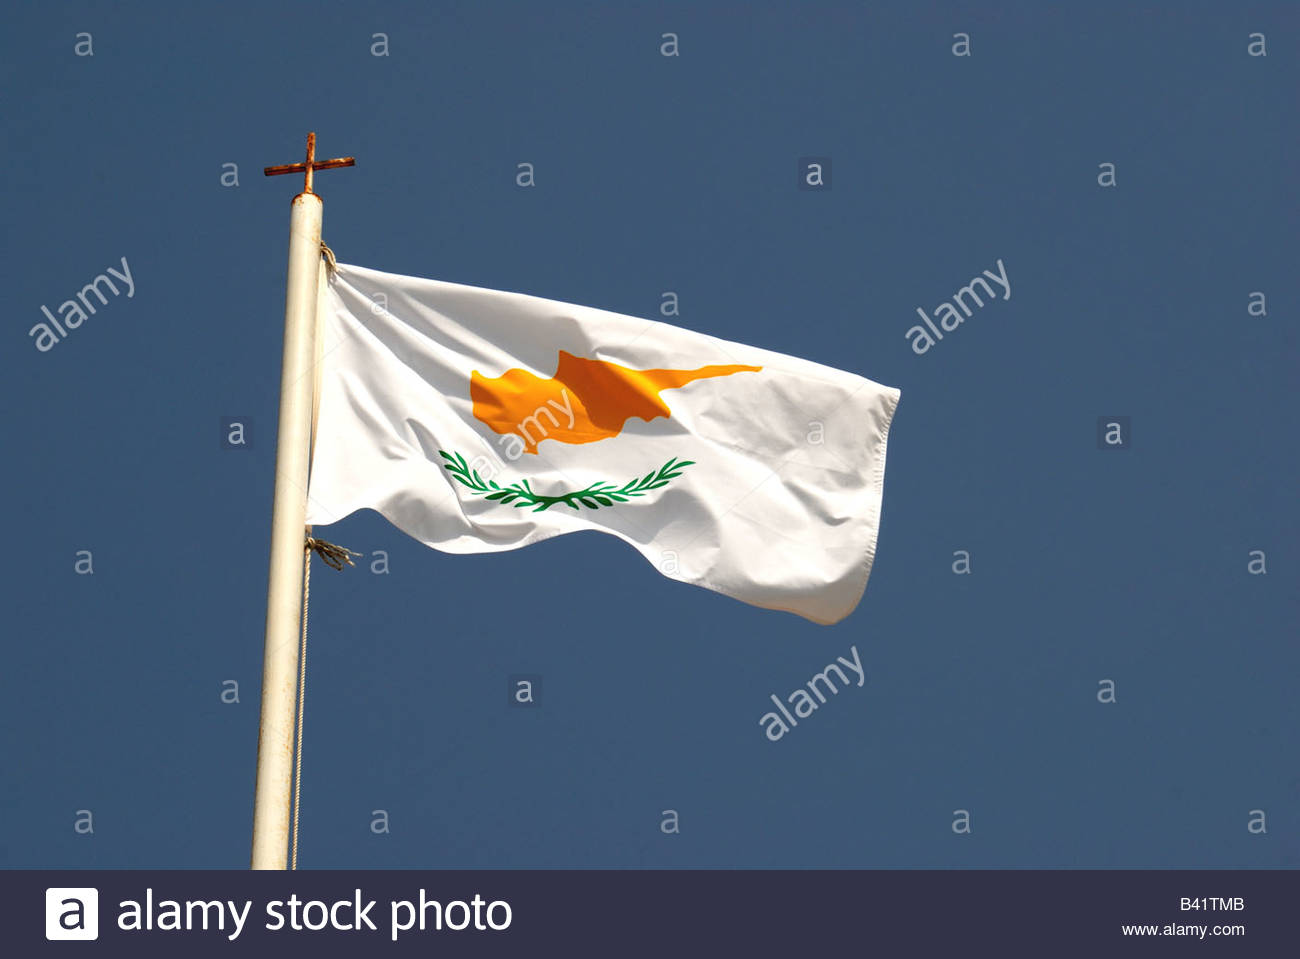 The Cypriot flag waving in the wind with a blue sky background. - Stock Image